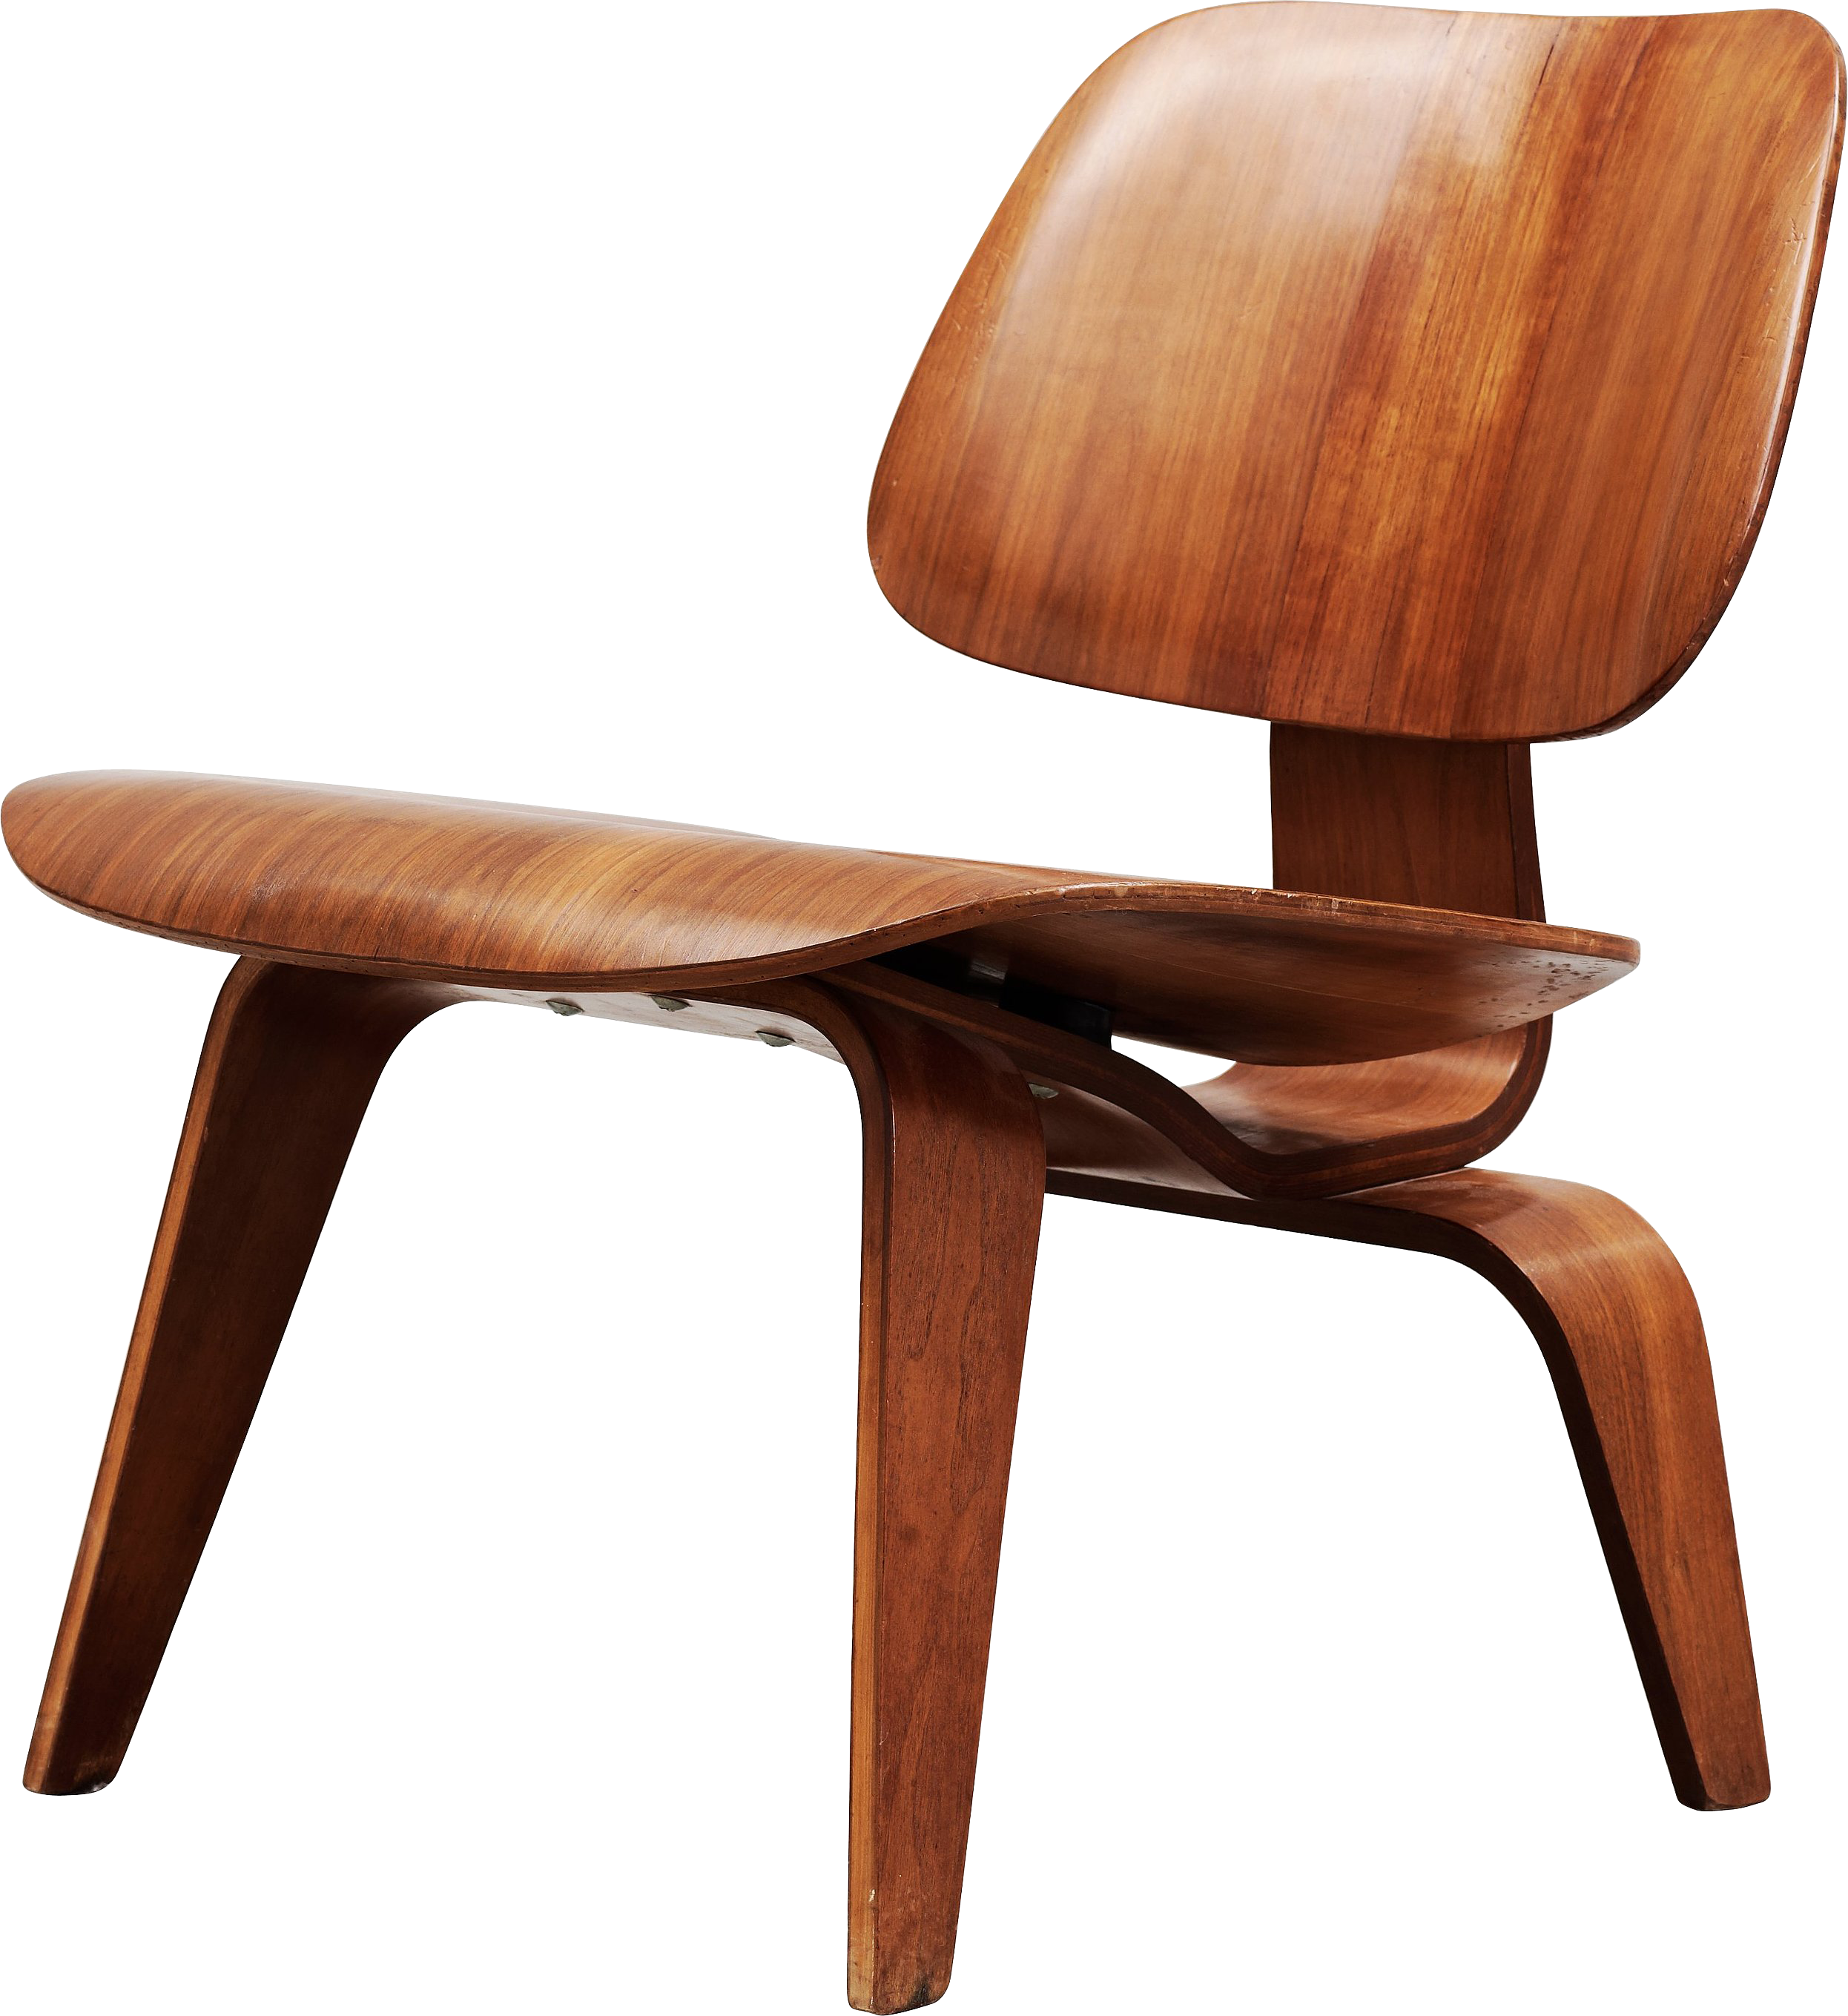 Chair PNG - 3204